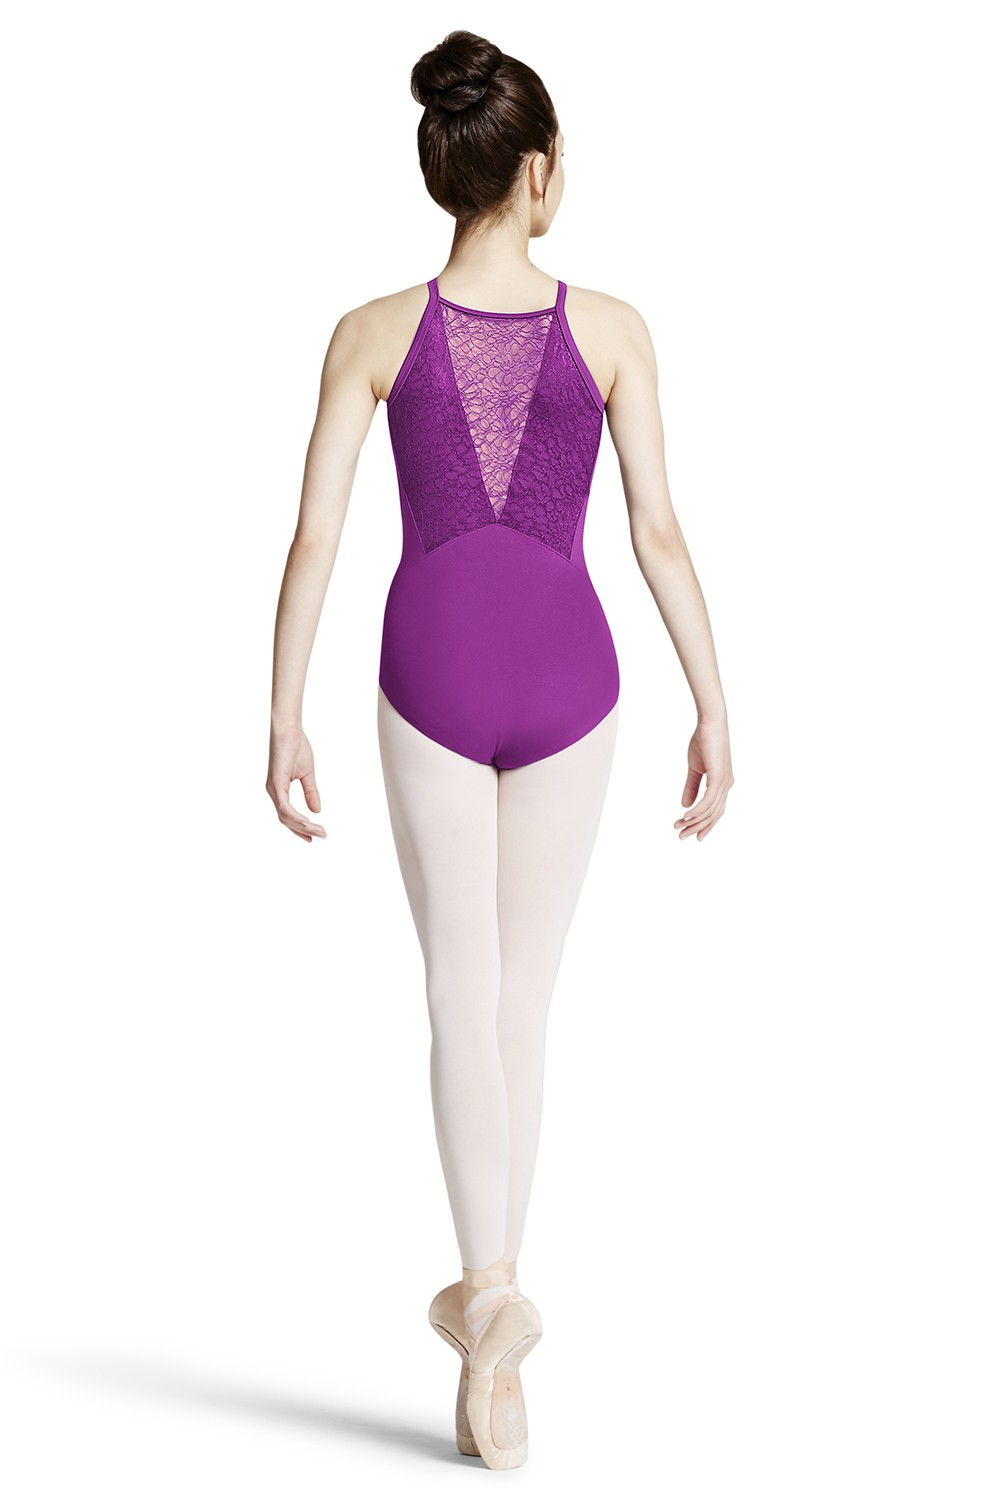 Body Con Spalline Sottili E Design A V In Pizzo Sul Retro Women's Dance Leotards